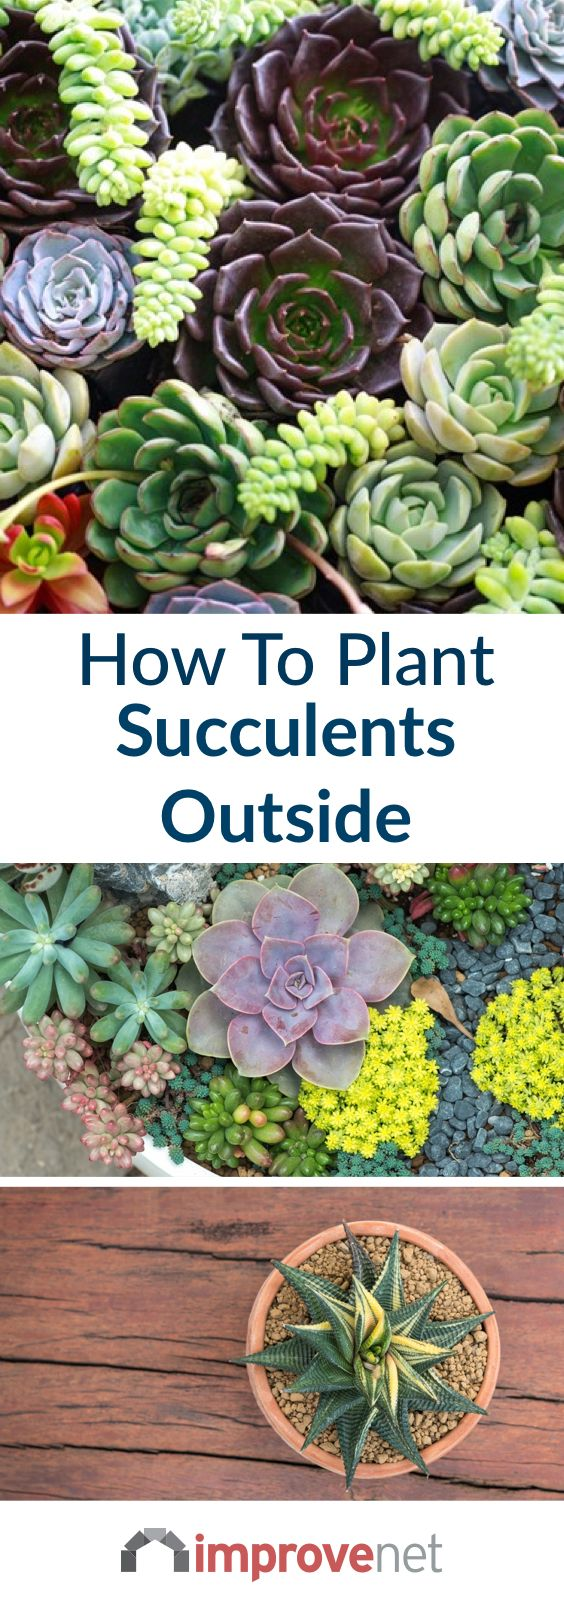 How To Plant Succulents Outside Landscaping Succulent